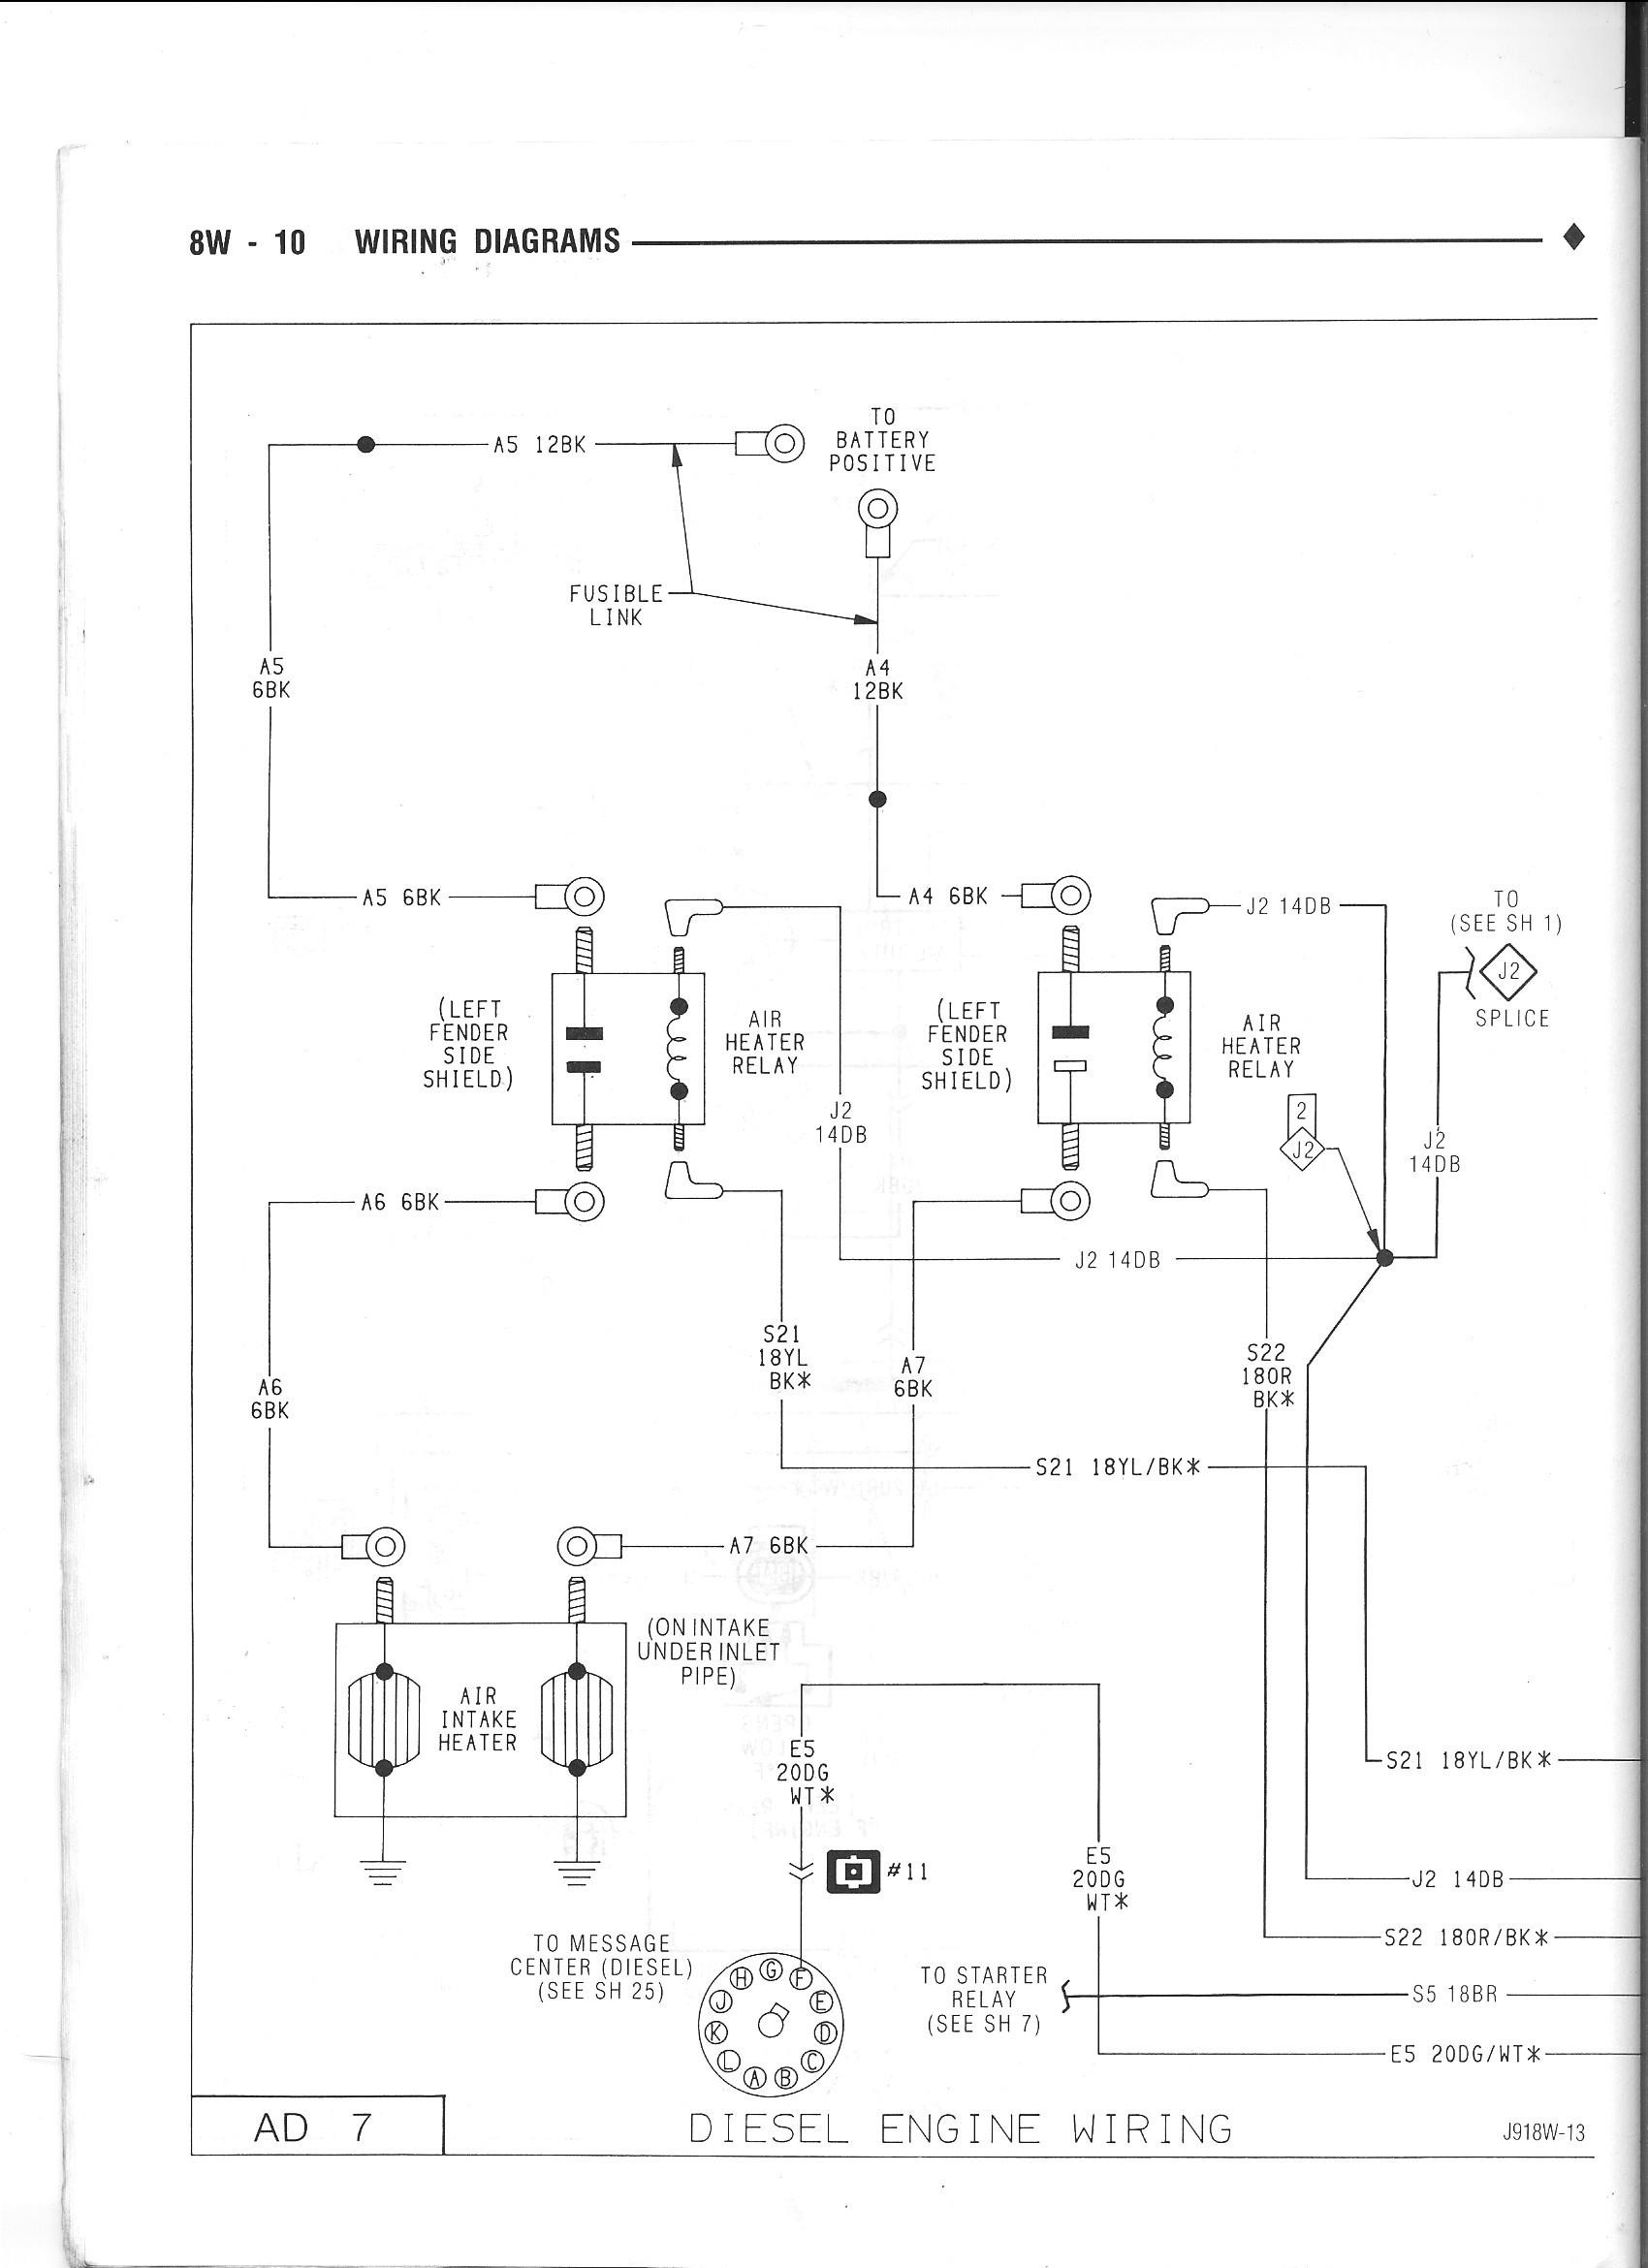 Free Dodge Wiring Diagrams 1989 Diagram For 1991 Dakota Radio Picture As Well Stereo Together With Additionally Scan30